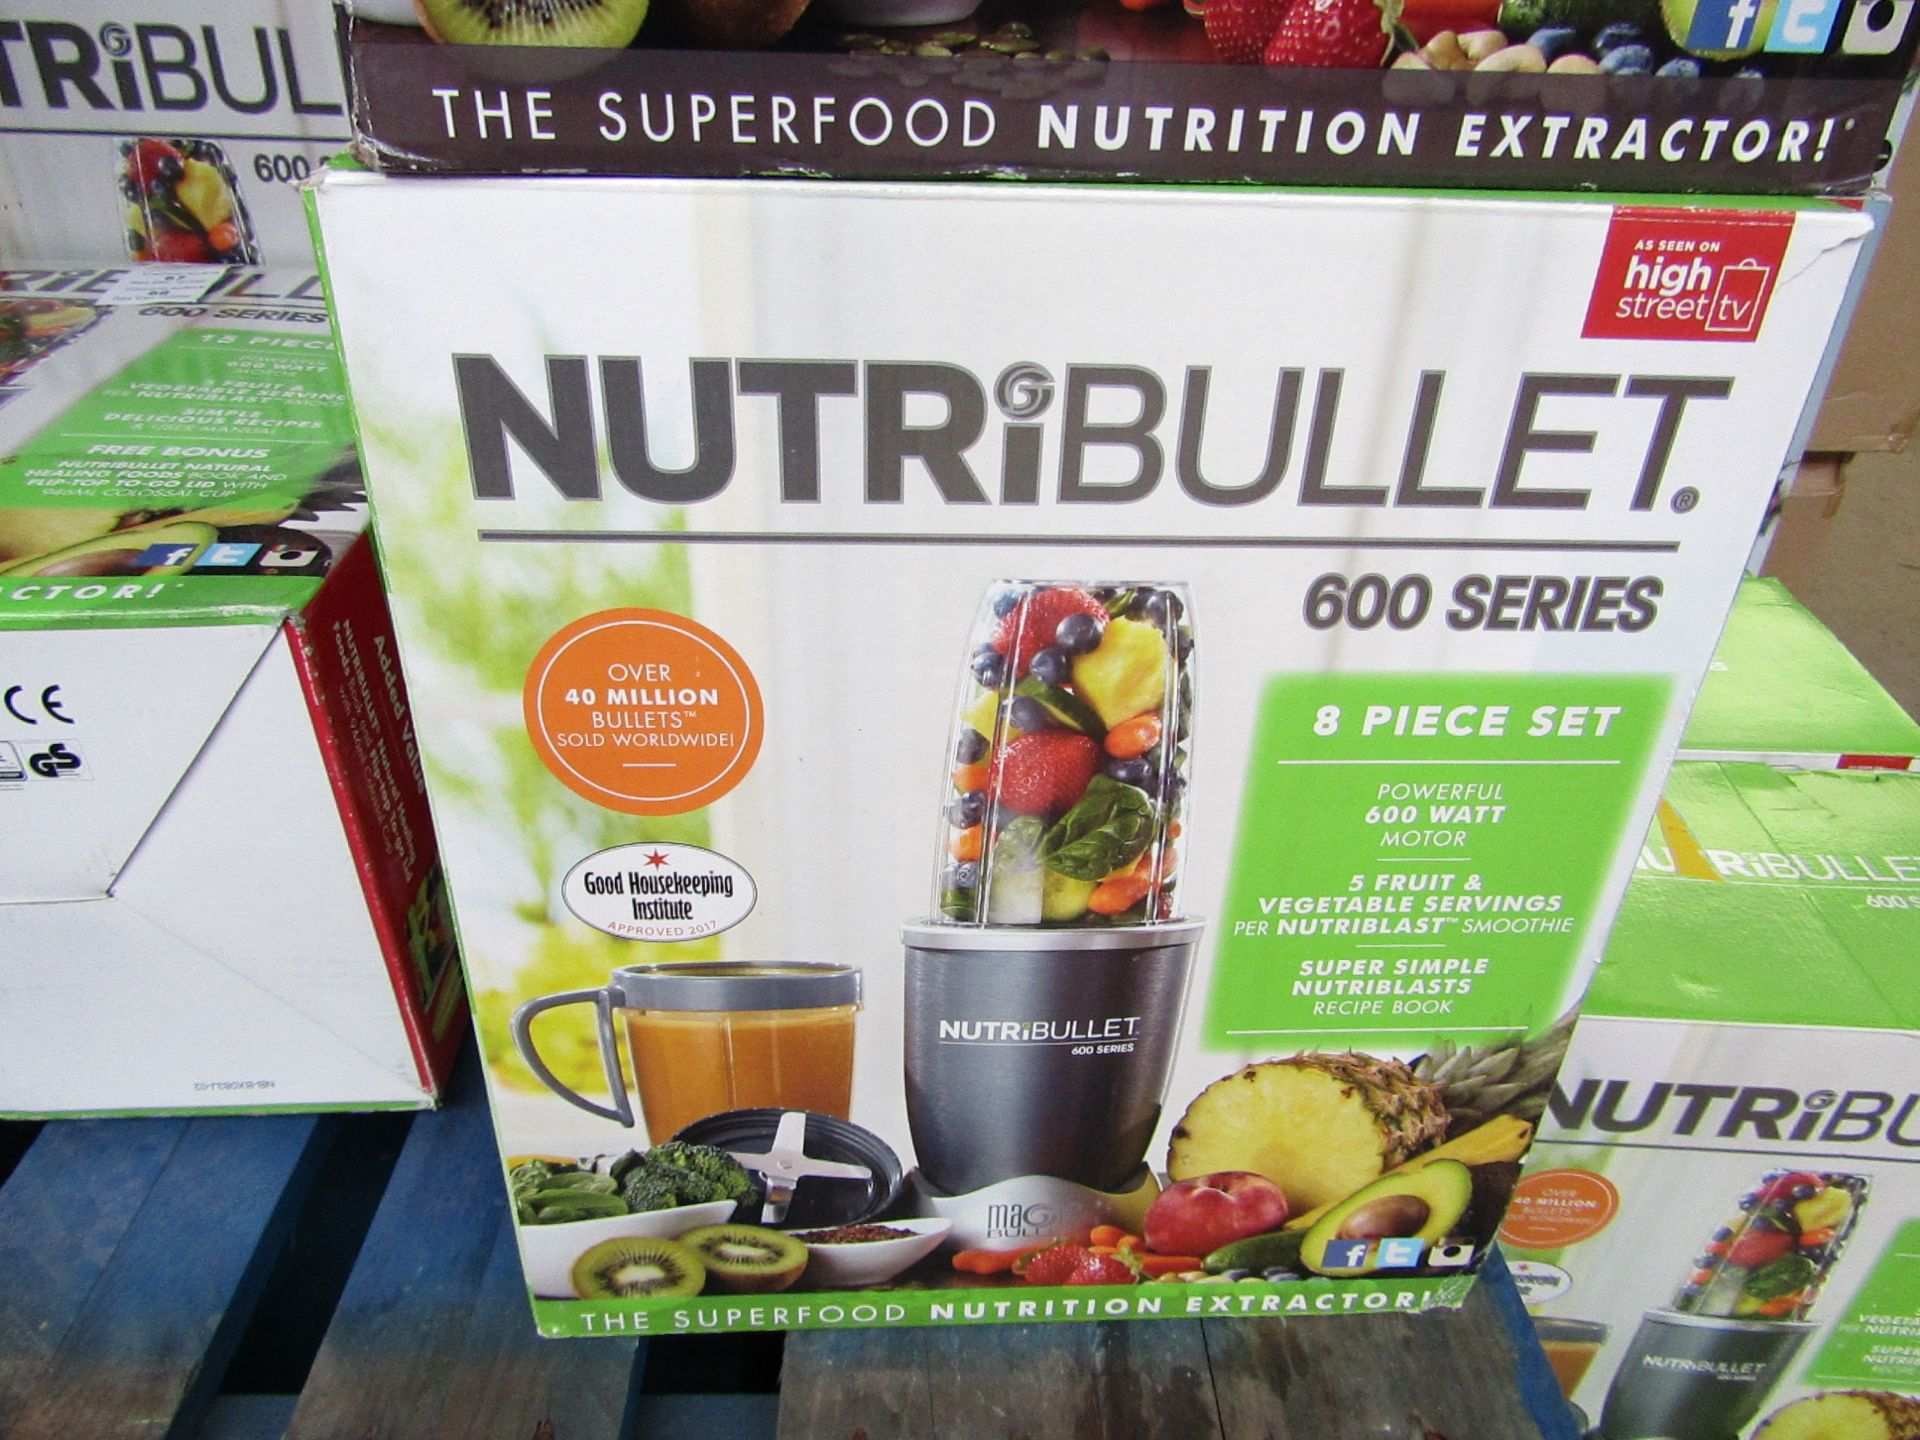 Lot 57 - | 1x | NUTRIBULLET 600 SERIES | UNCHECKED AND BOXED | NO ONLINE RE-SALE | SKU C5060191461245 |